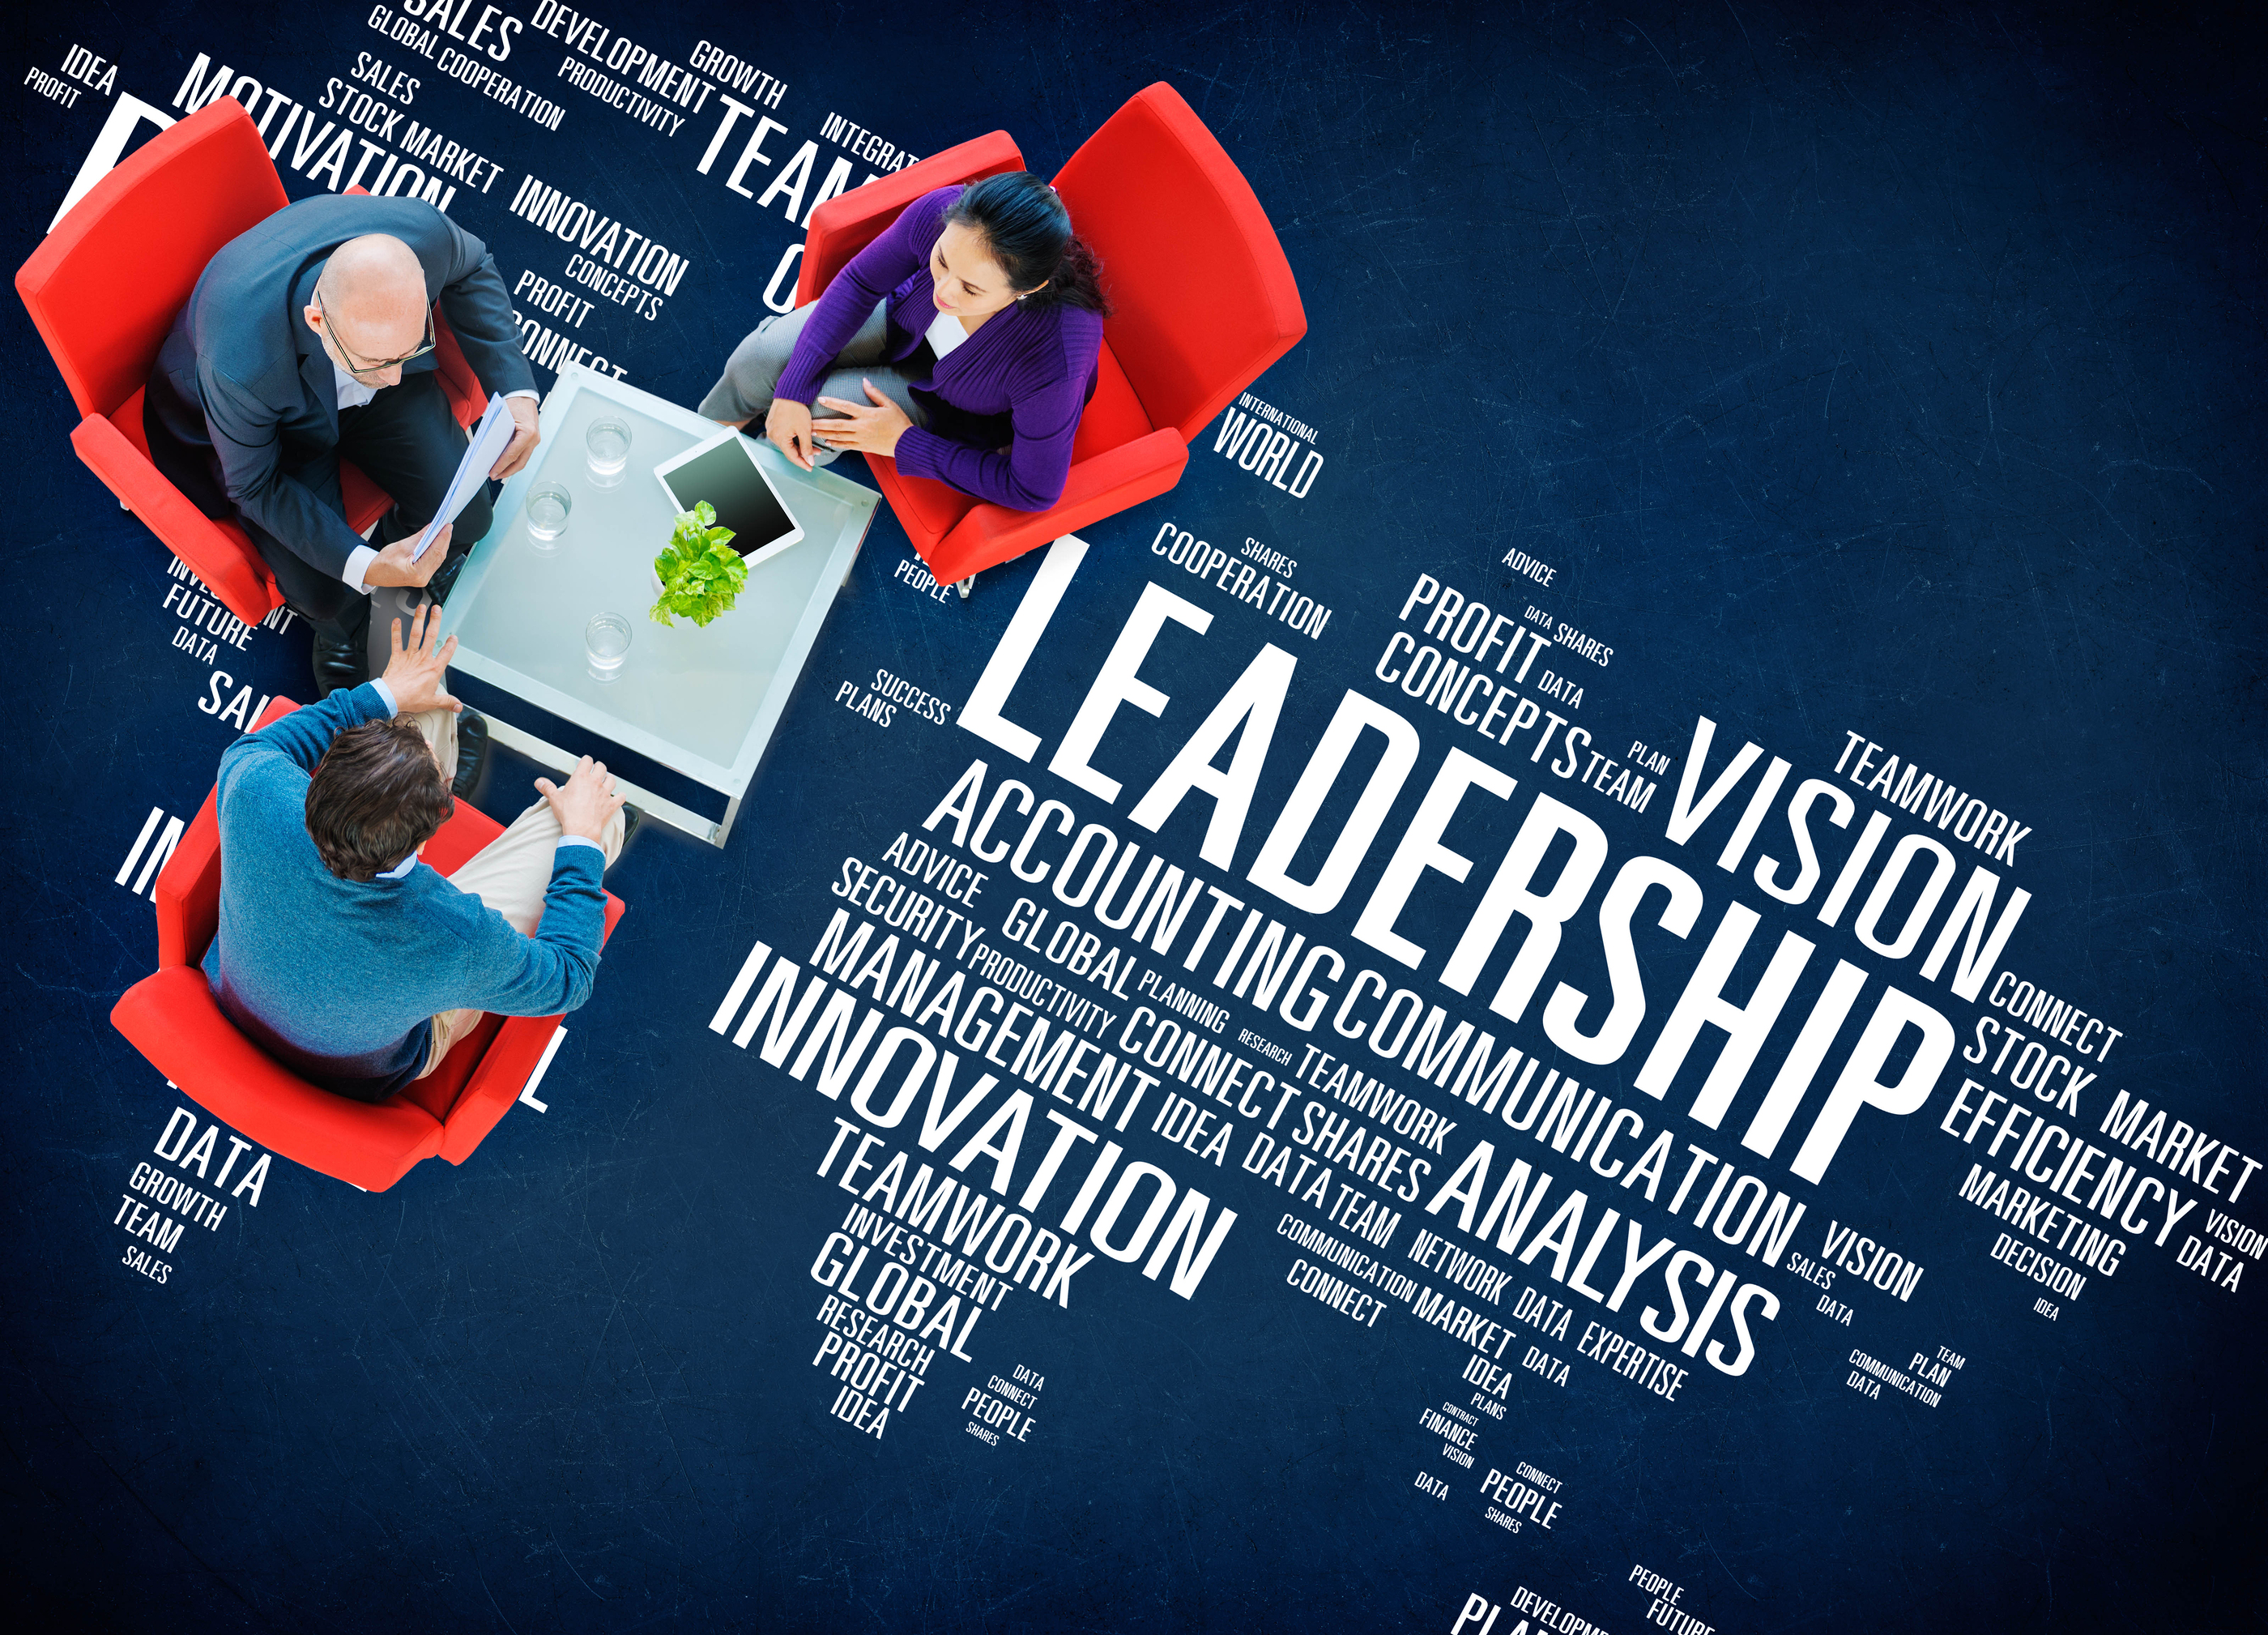 Does your leadership development miss the mark?